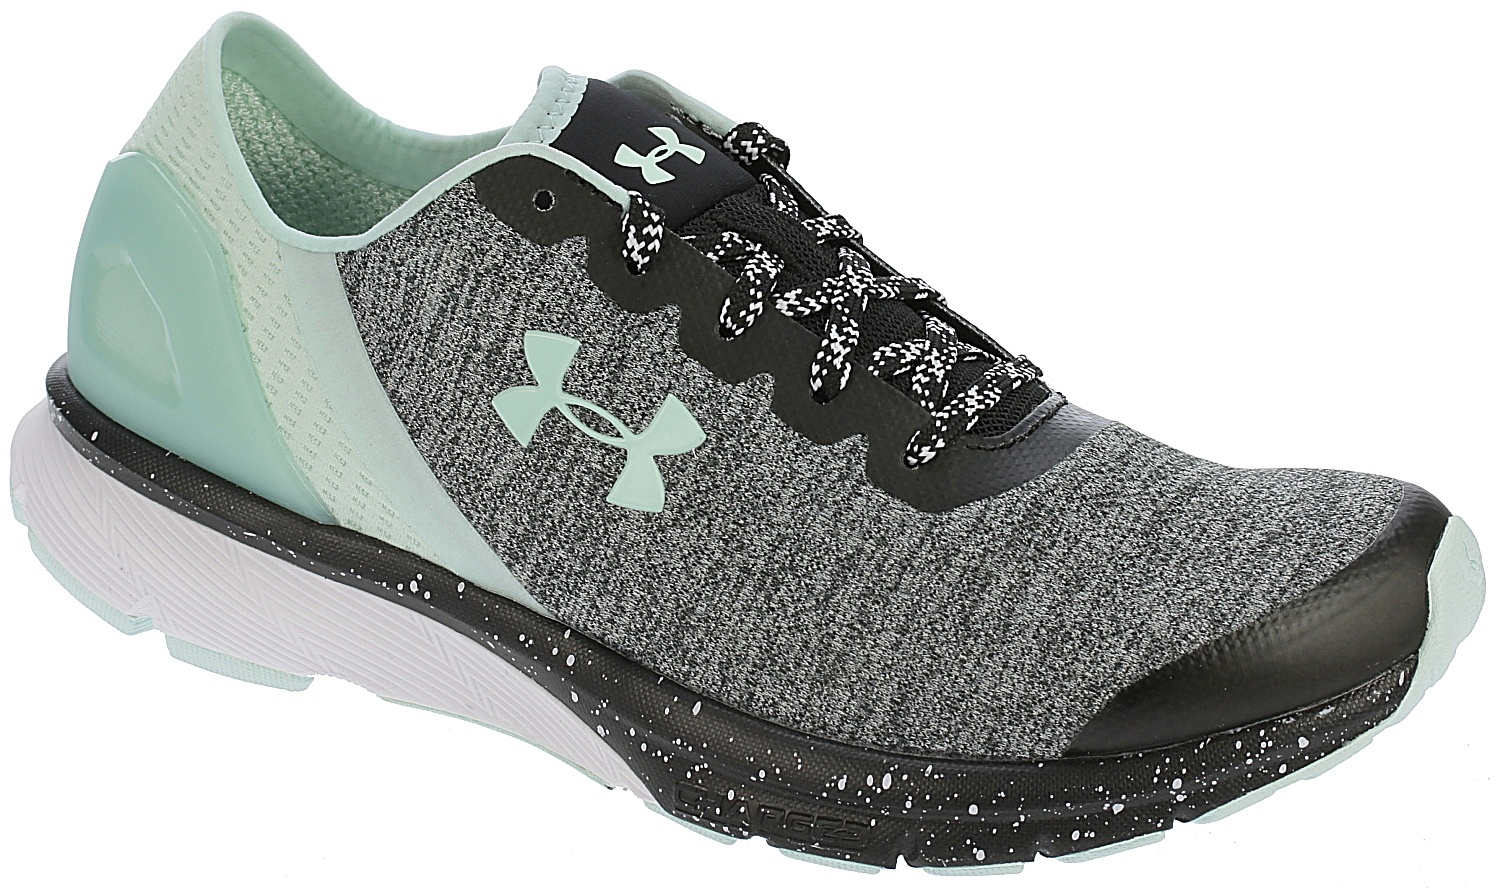 boty Under Armour Charged Escape - 002 Black White Refresh Mint - boty-boty .cz 153cf3b5653